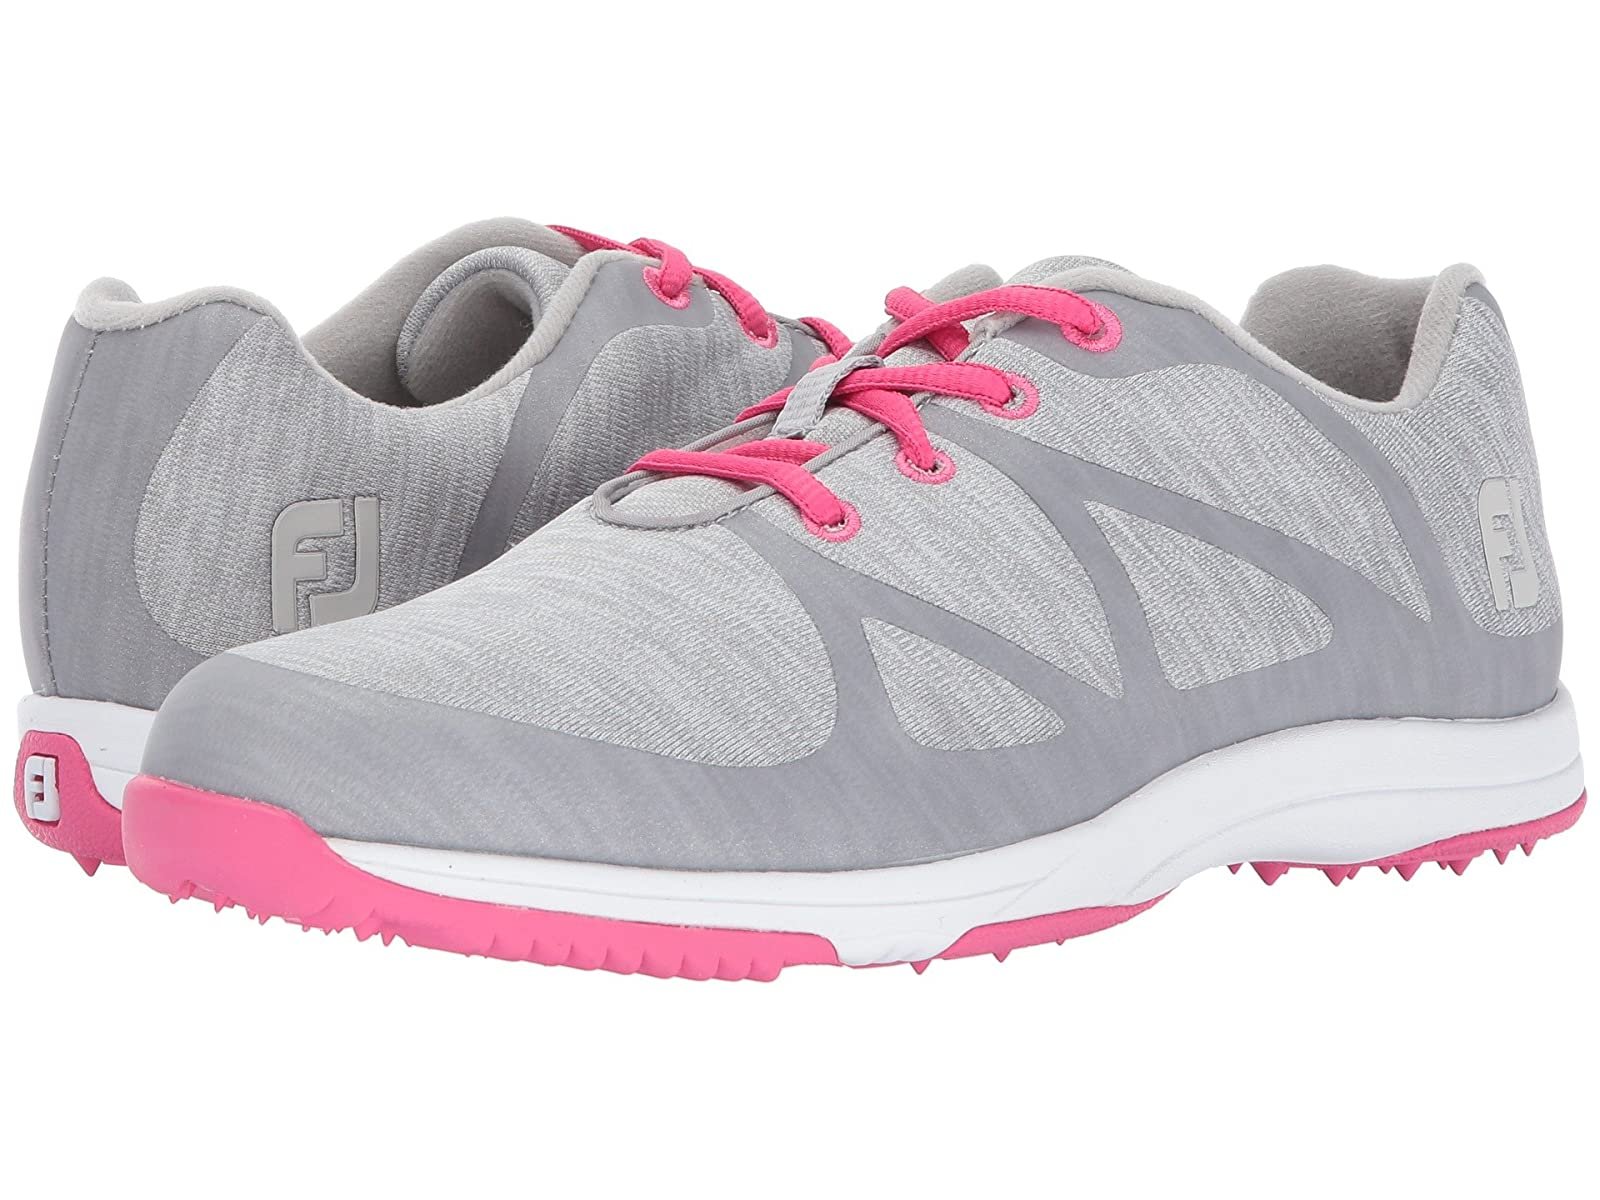 FootJoy FJ LeisureAtmospheric grades have affordable shoes